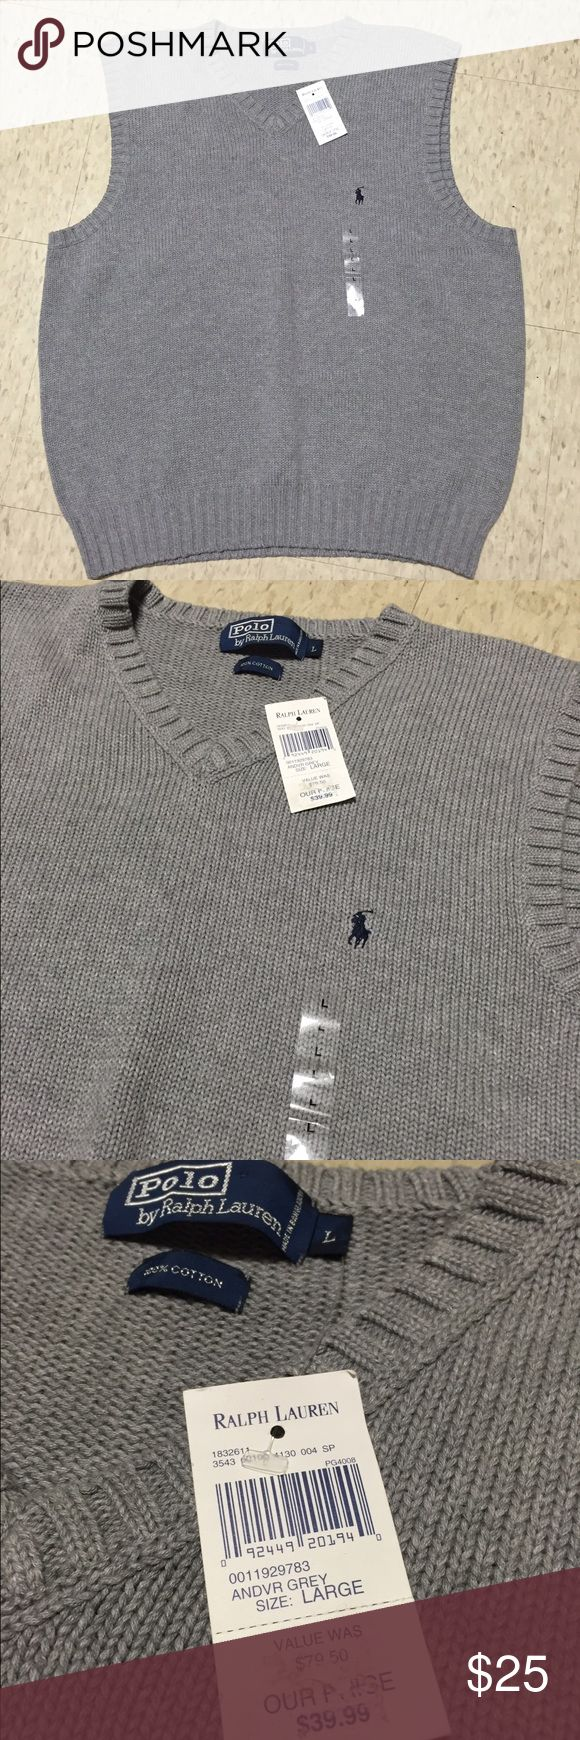 Ralph Lauren Sweater Vest Ralph Lauren Sweater Vest. Men's large. New with tags Ralph Lauren Sweaters